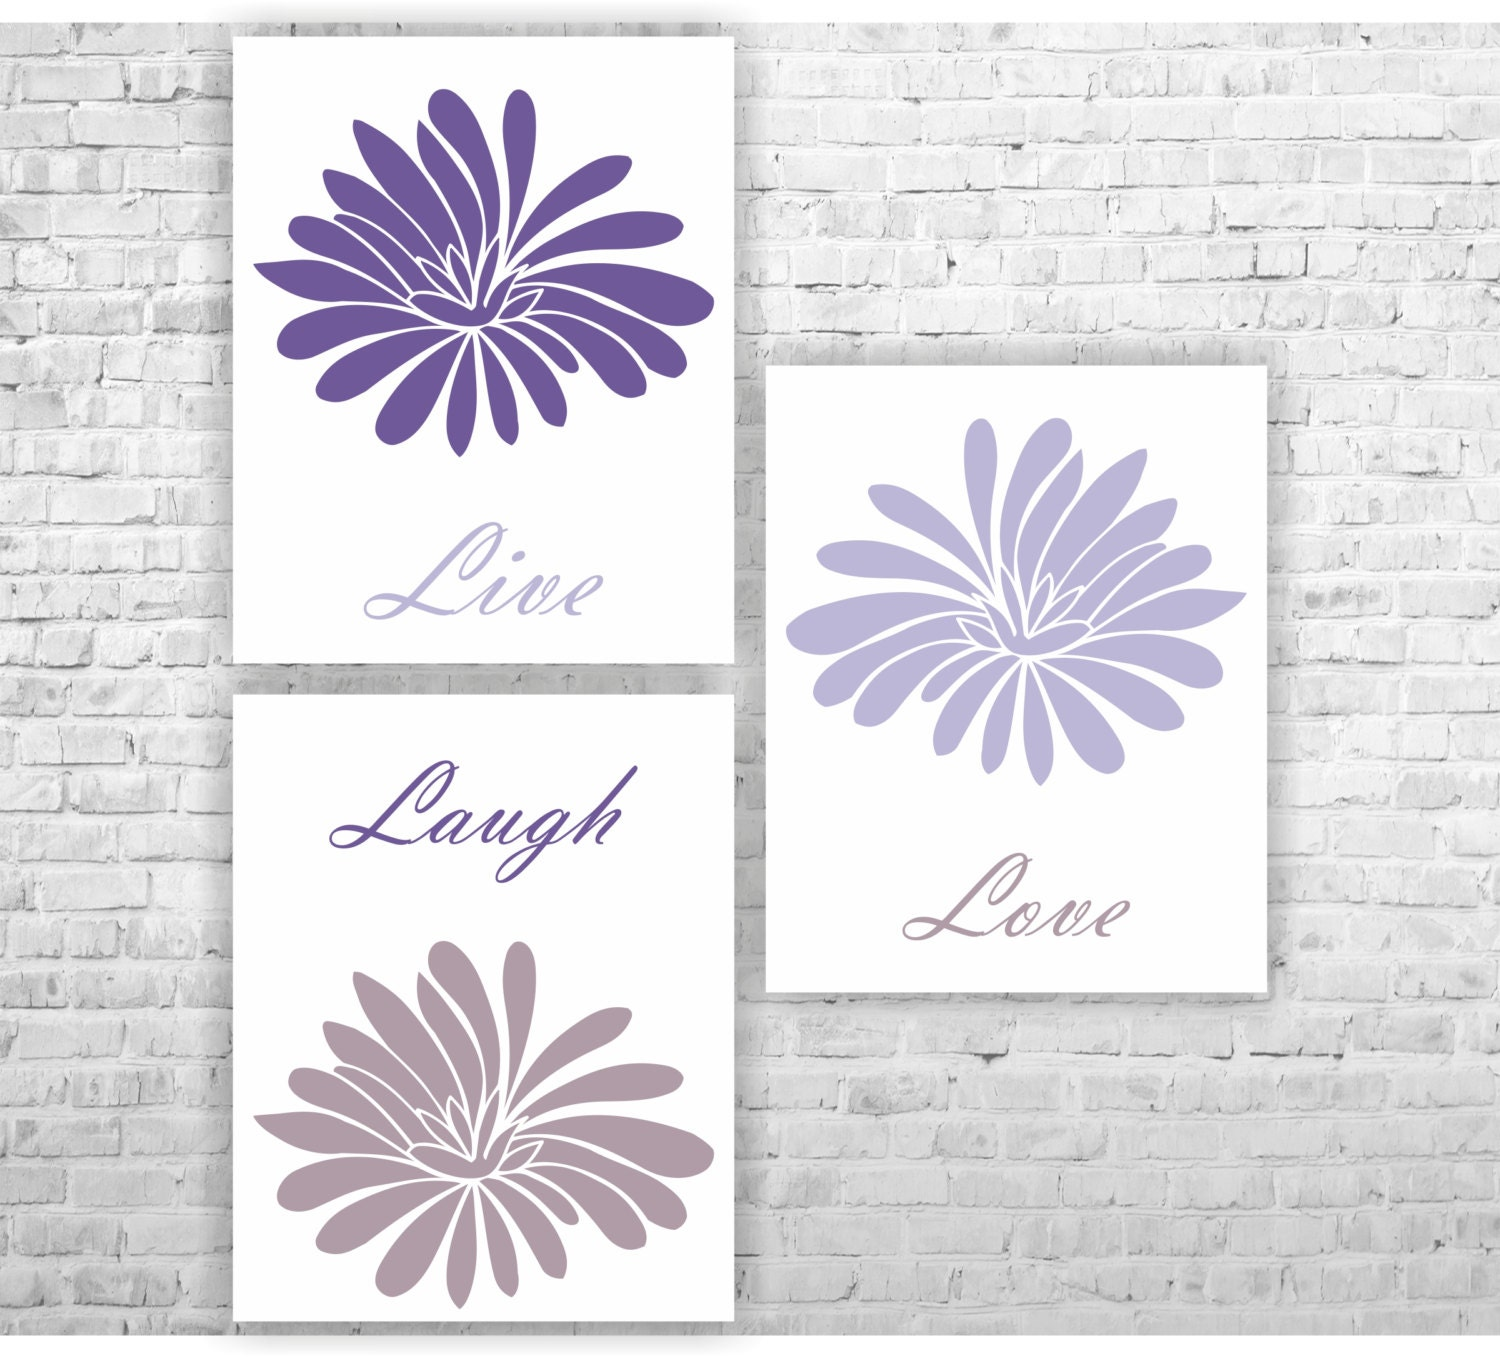 Live Laugh Love Home Decor Wall Art Navy Blue And Light Blue